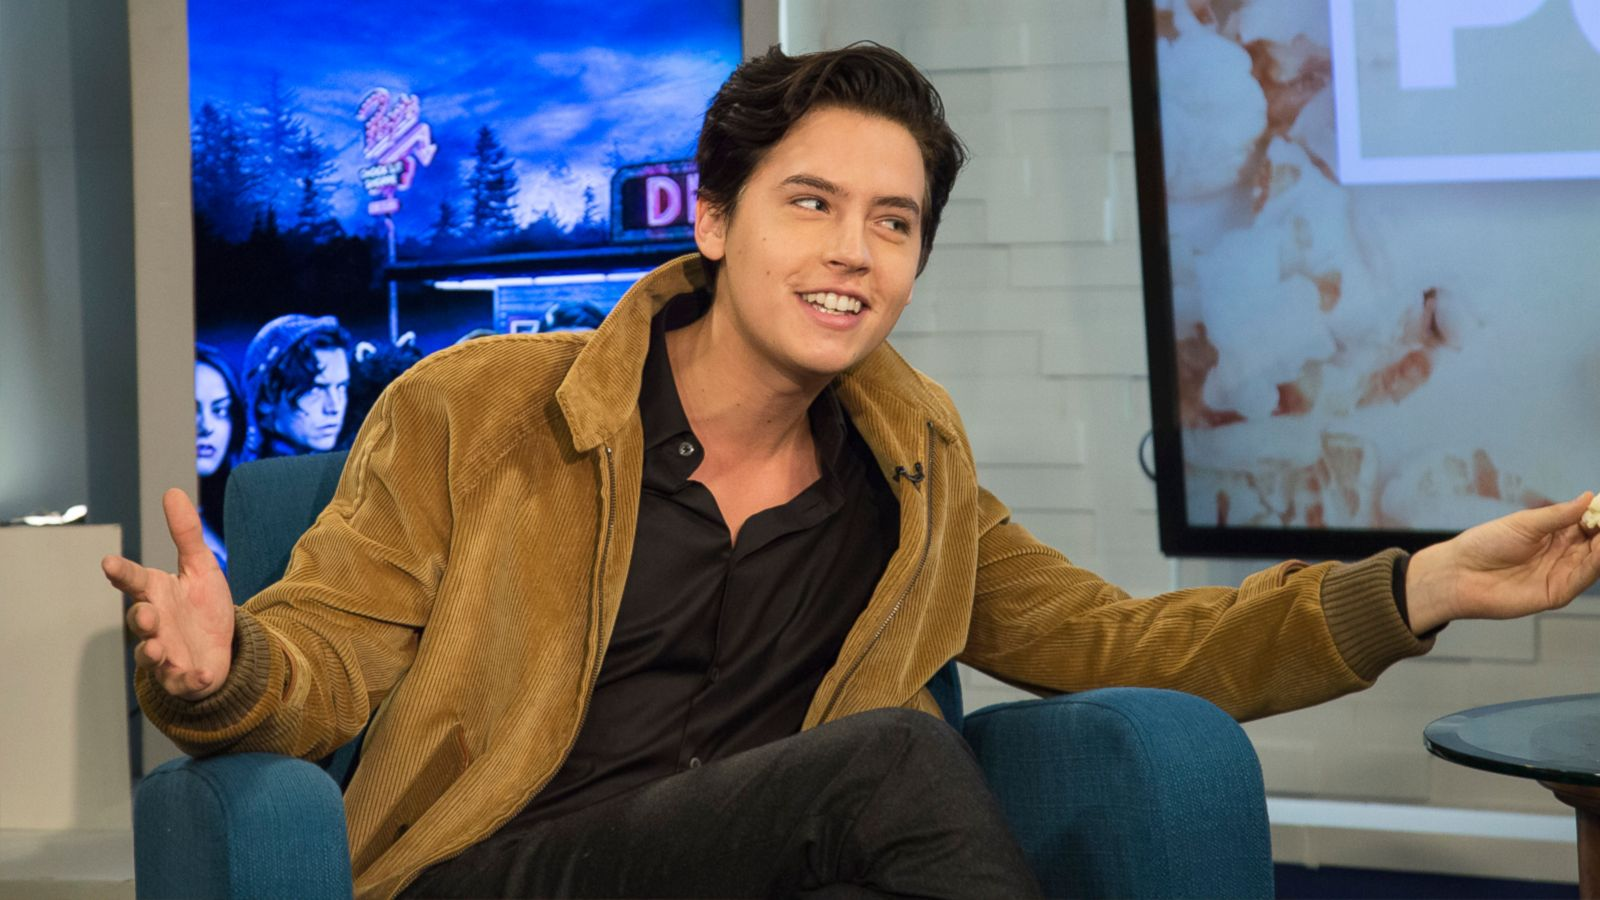 Riverdale  star Cole Sprouse sings  Unforgettable  Video - ABC News 3e3dc972ddb2